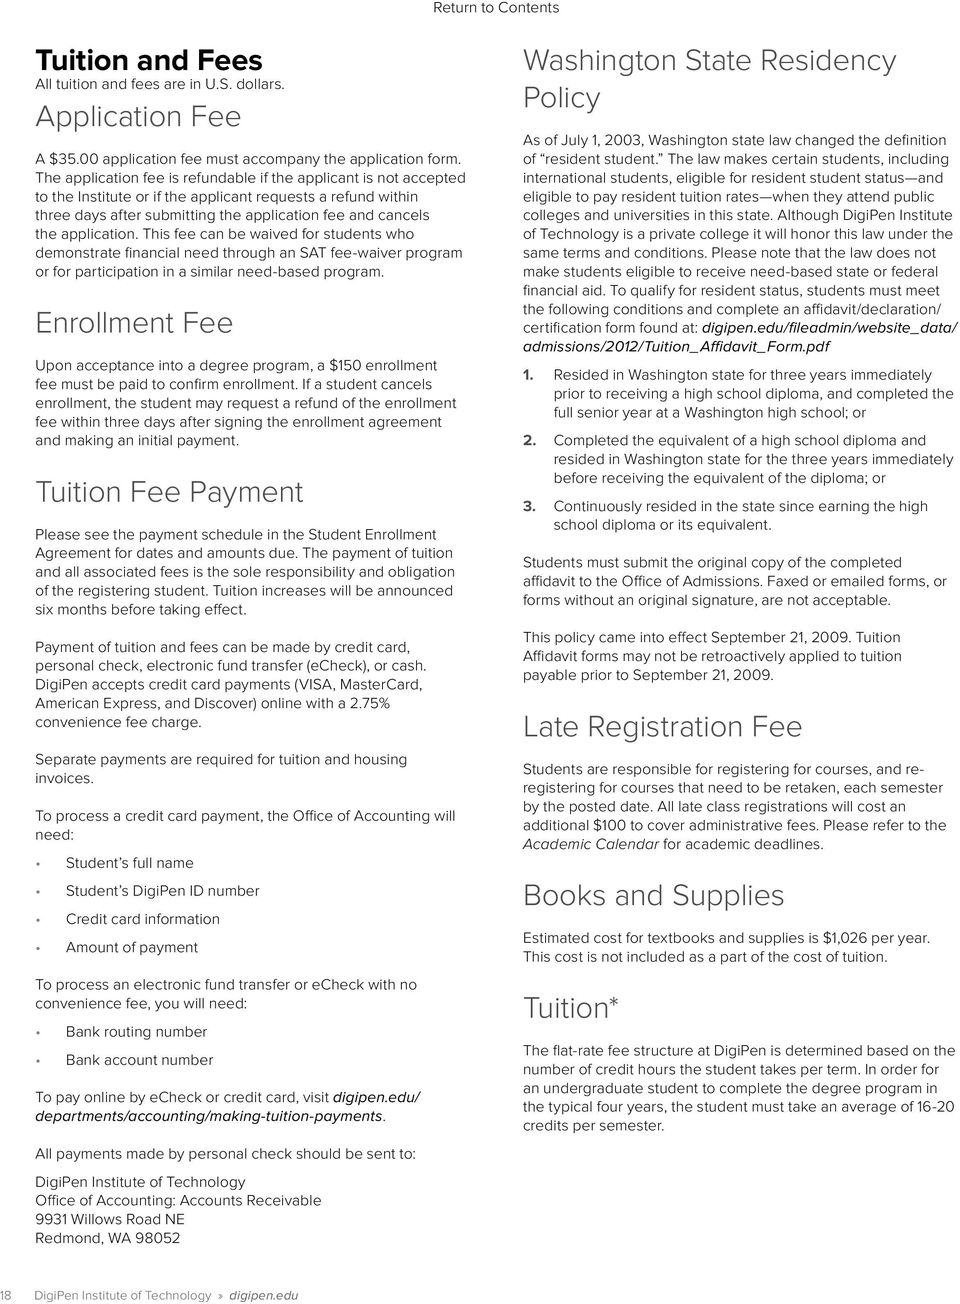 application. This fee can be waived for students who demonstrate financial need through an SAT fee-waiver program or for participation in a similar need-based program.